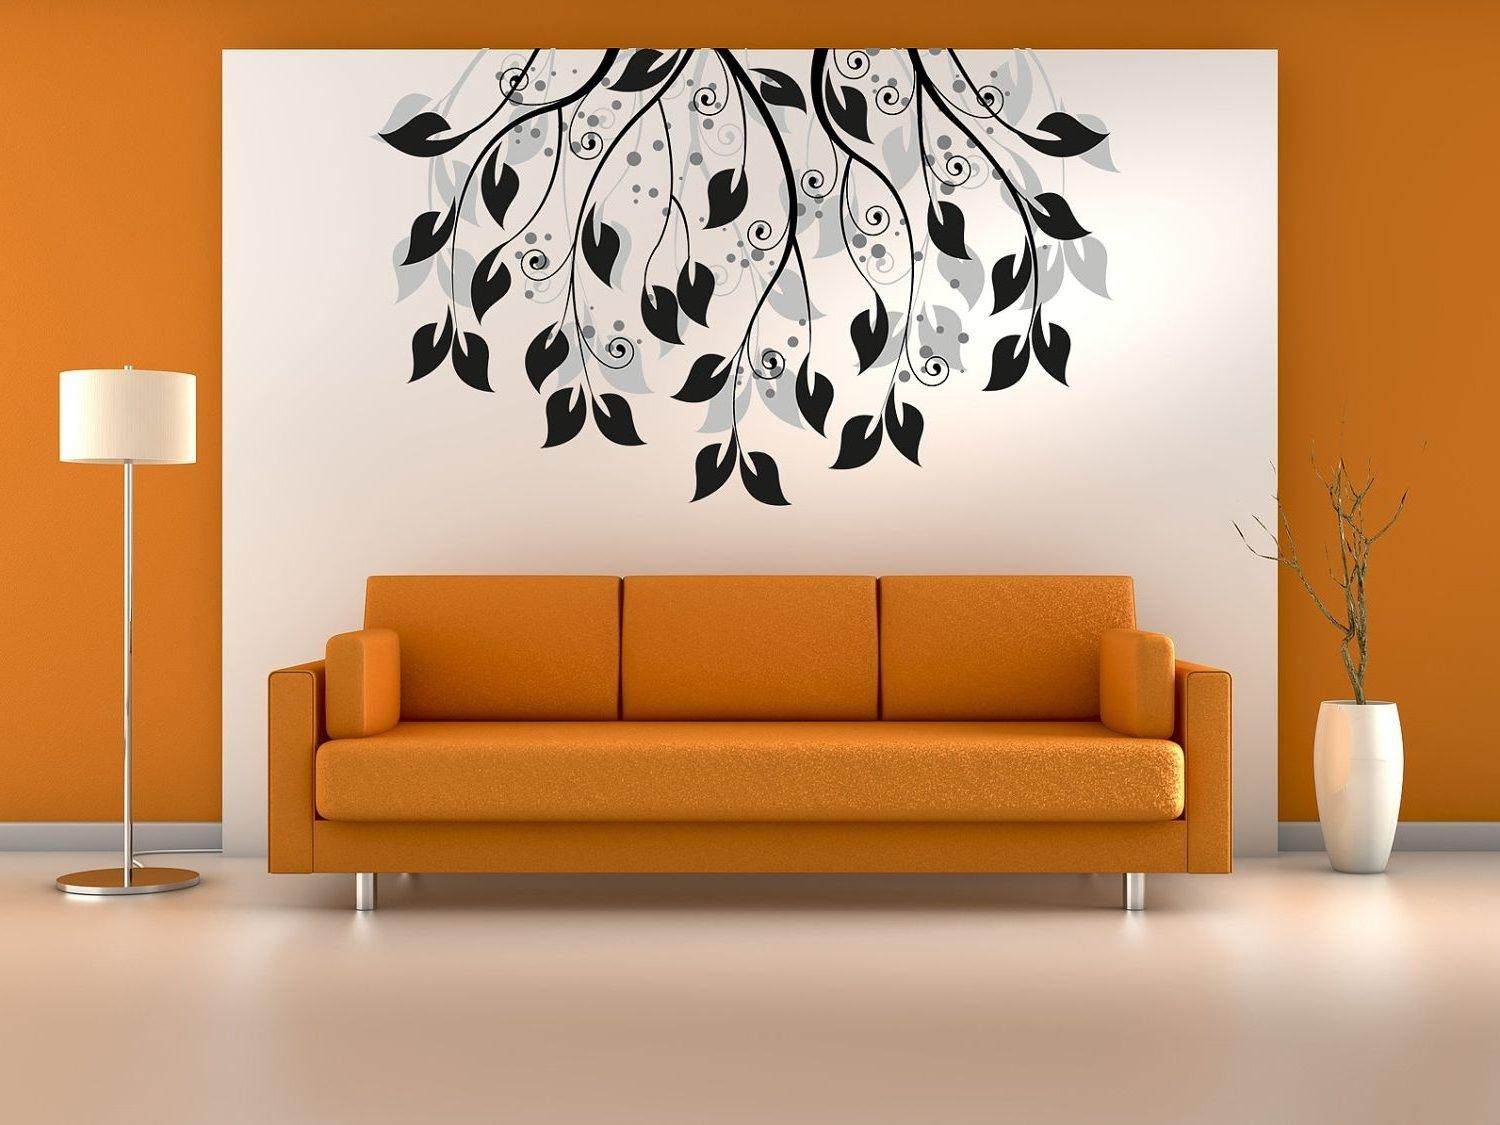 Living Room Wall Art Decals Mahogany Wood Book Rack White Wall With Regard To Metal Chandelier Wall Art (View 7 of 20)